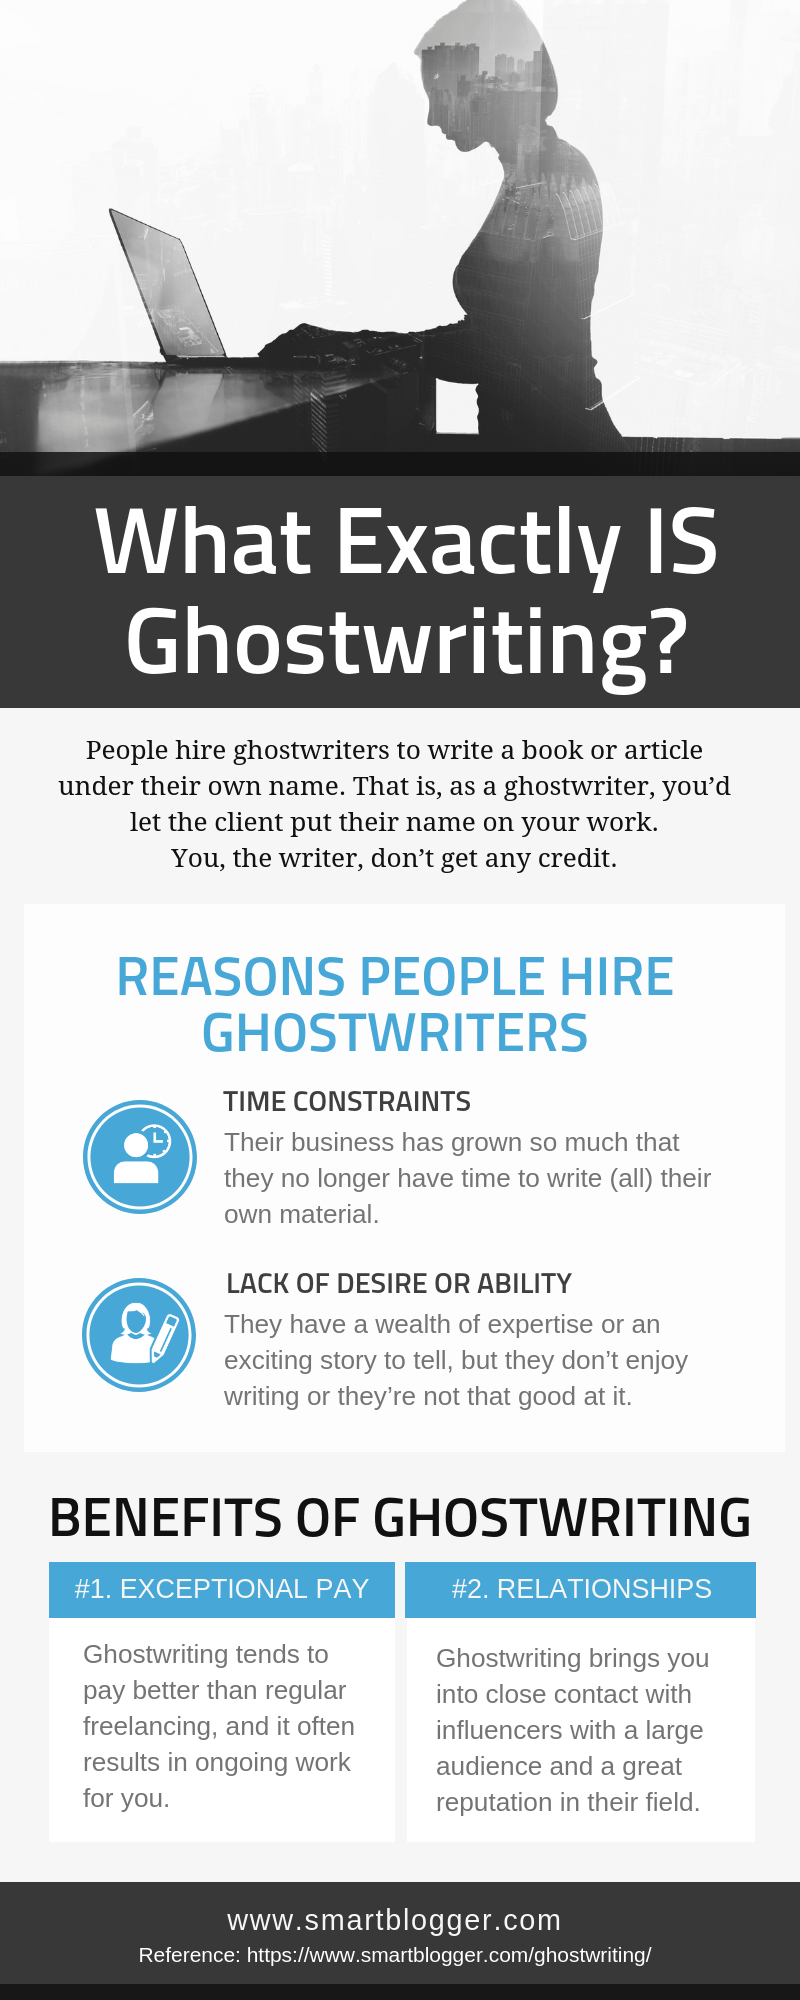 Ghostwriting 101: The Must-Read Ghostwriter Primer for 2019